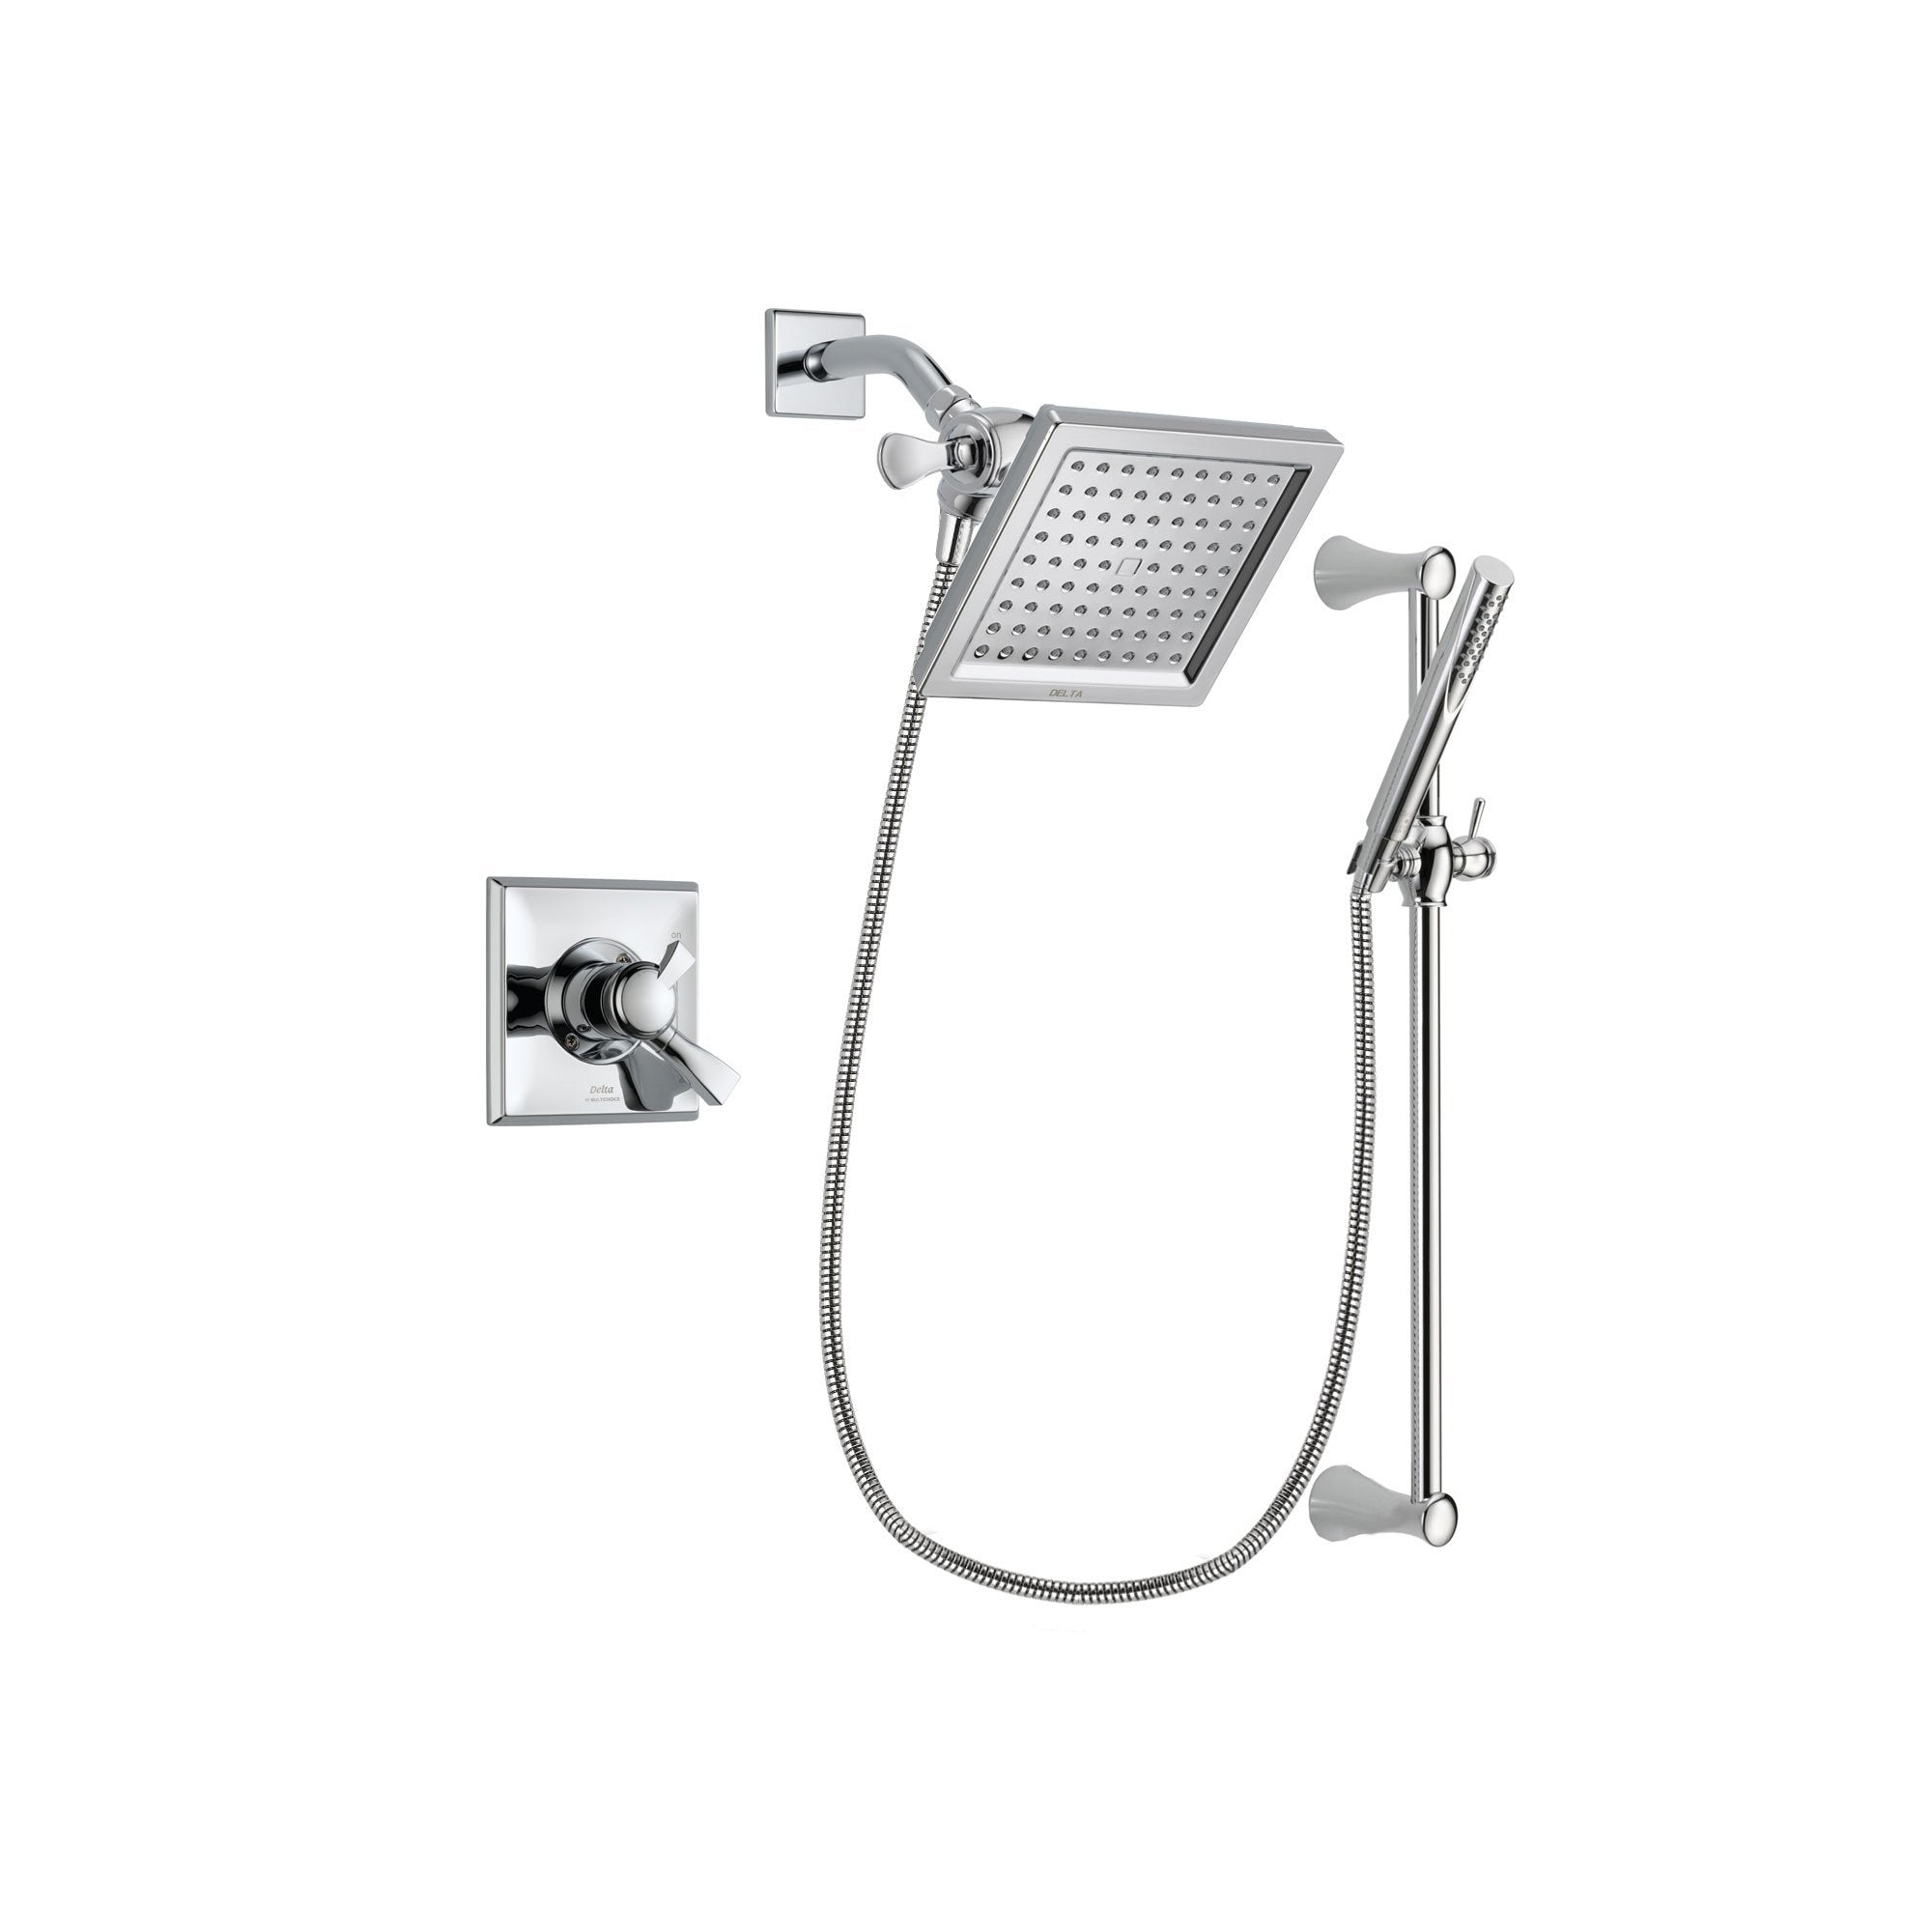 Delta Dryden Chrome Shower Faucet System w/ Shower Head and Hand Shower DSP0270V